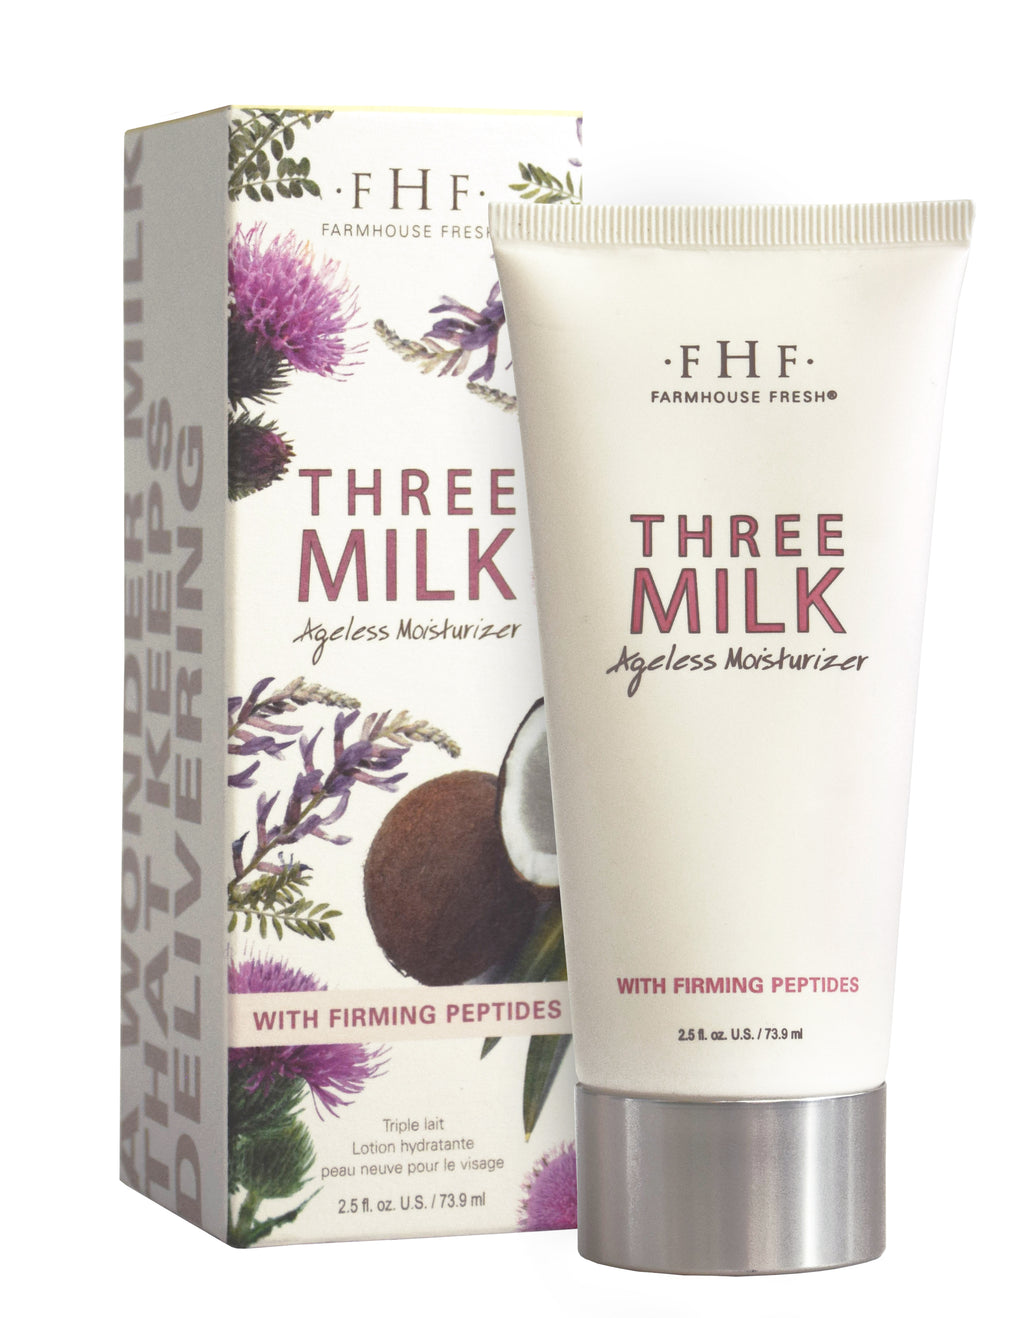 Three Milk Ageless Moisturizer